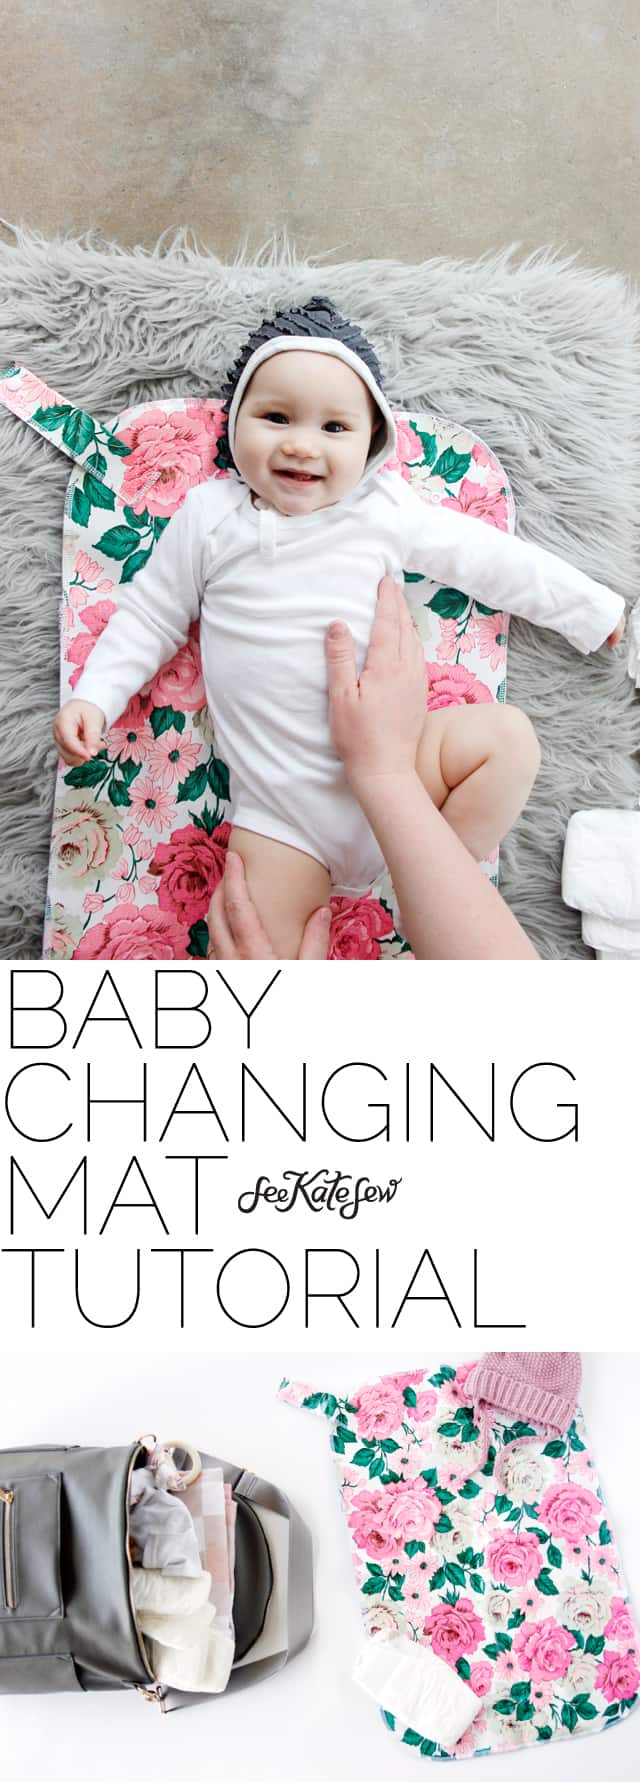 Oilcloth Changing Mat Tutorial | See Kate Sew (free pattern!)